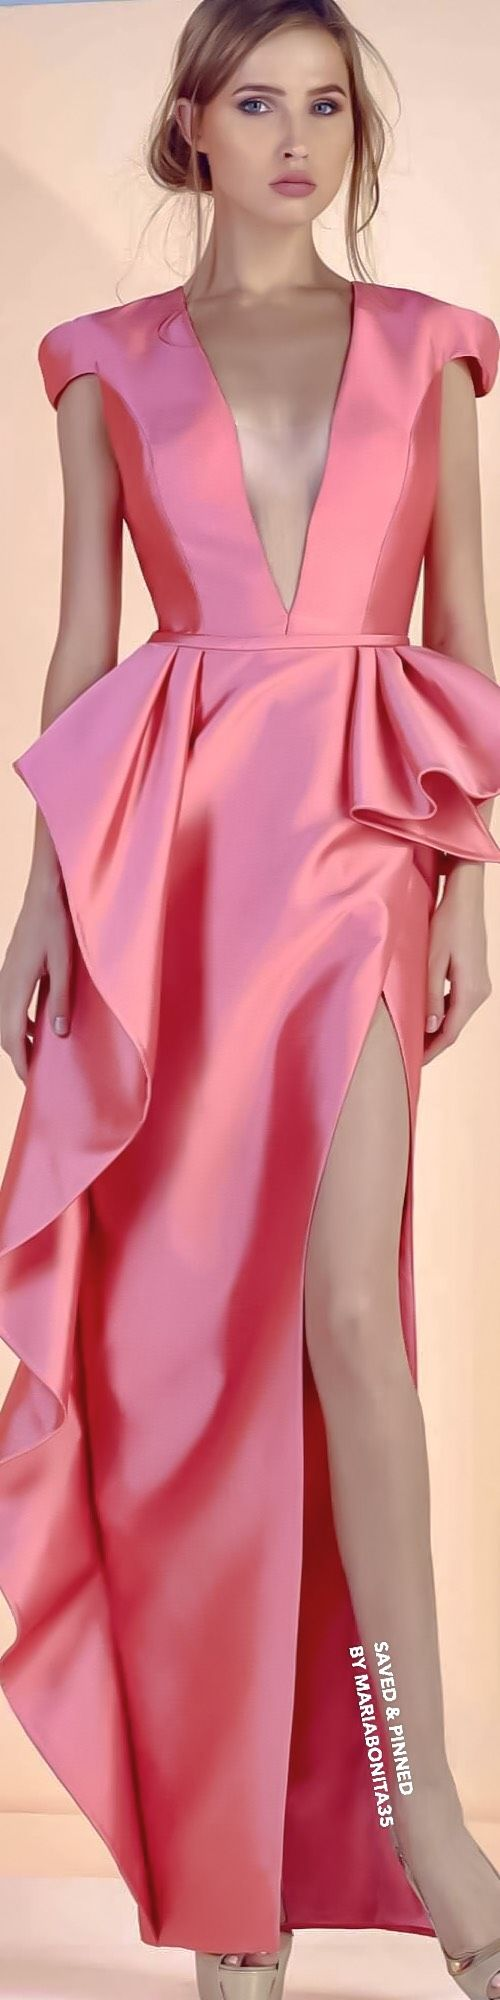 Divina by Edward Arsouni Spring 2017 RTW Collection Highlights